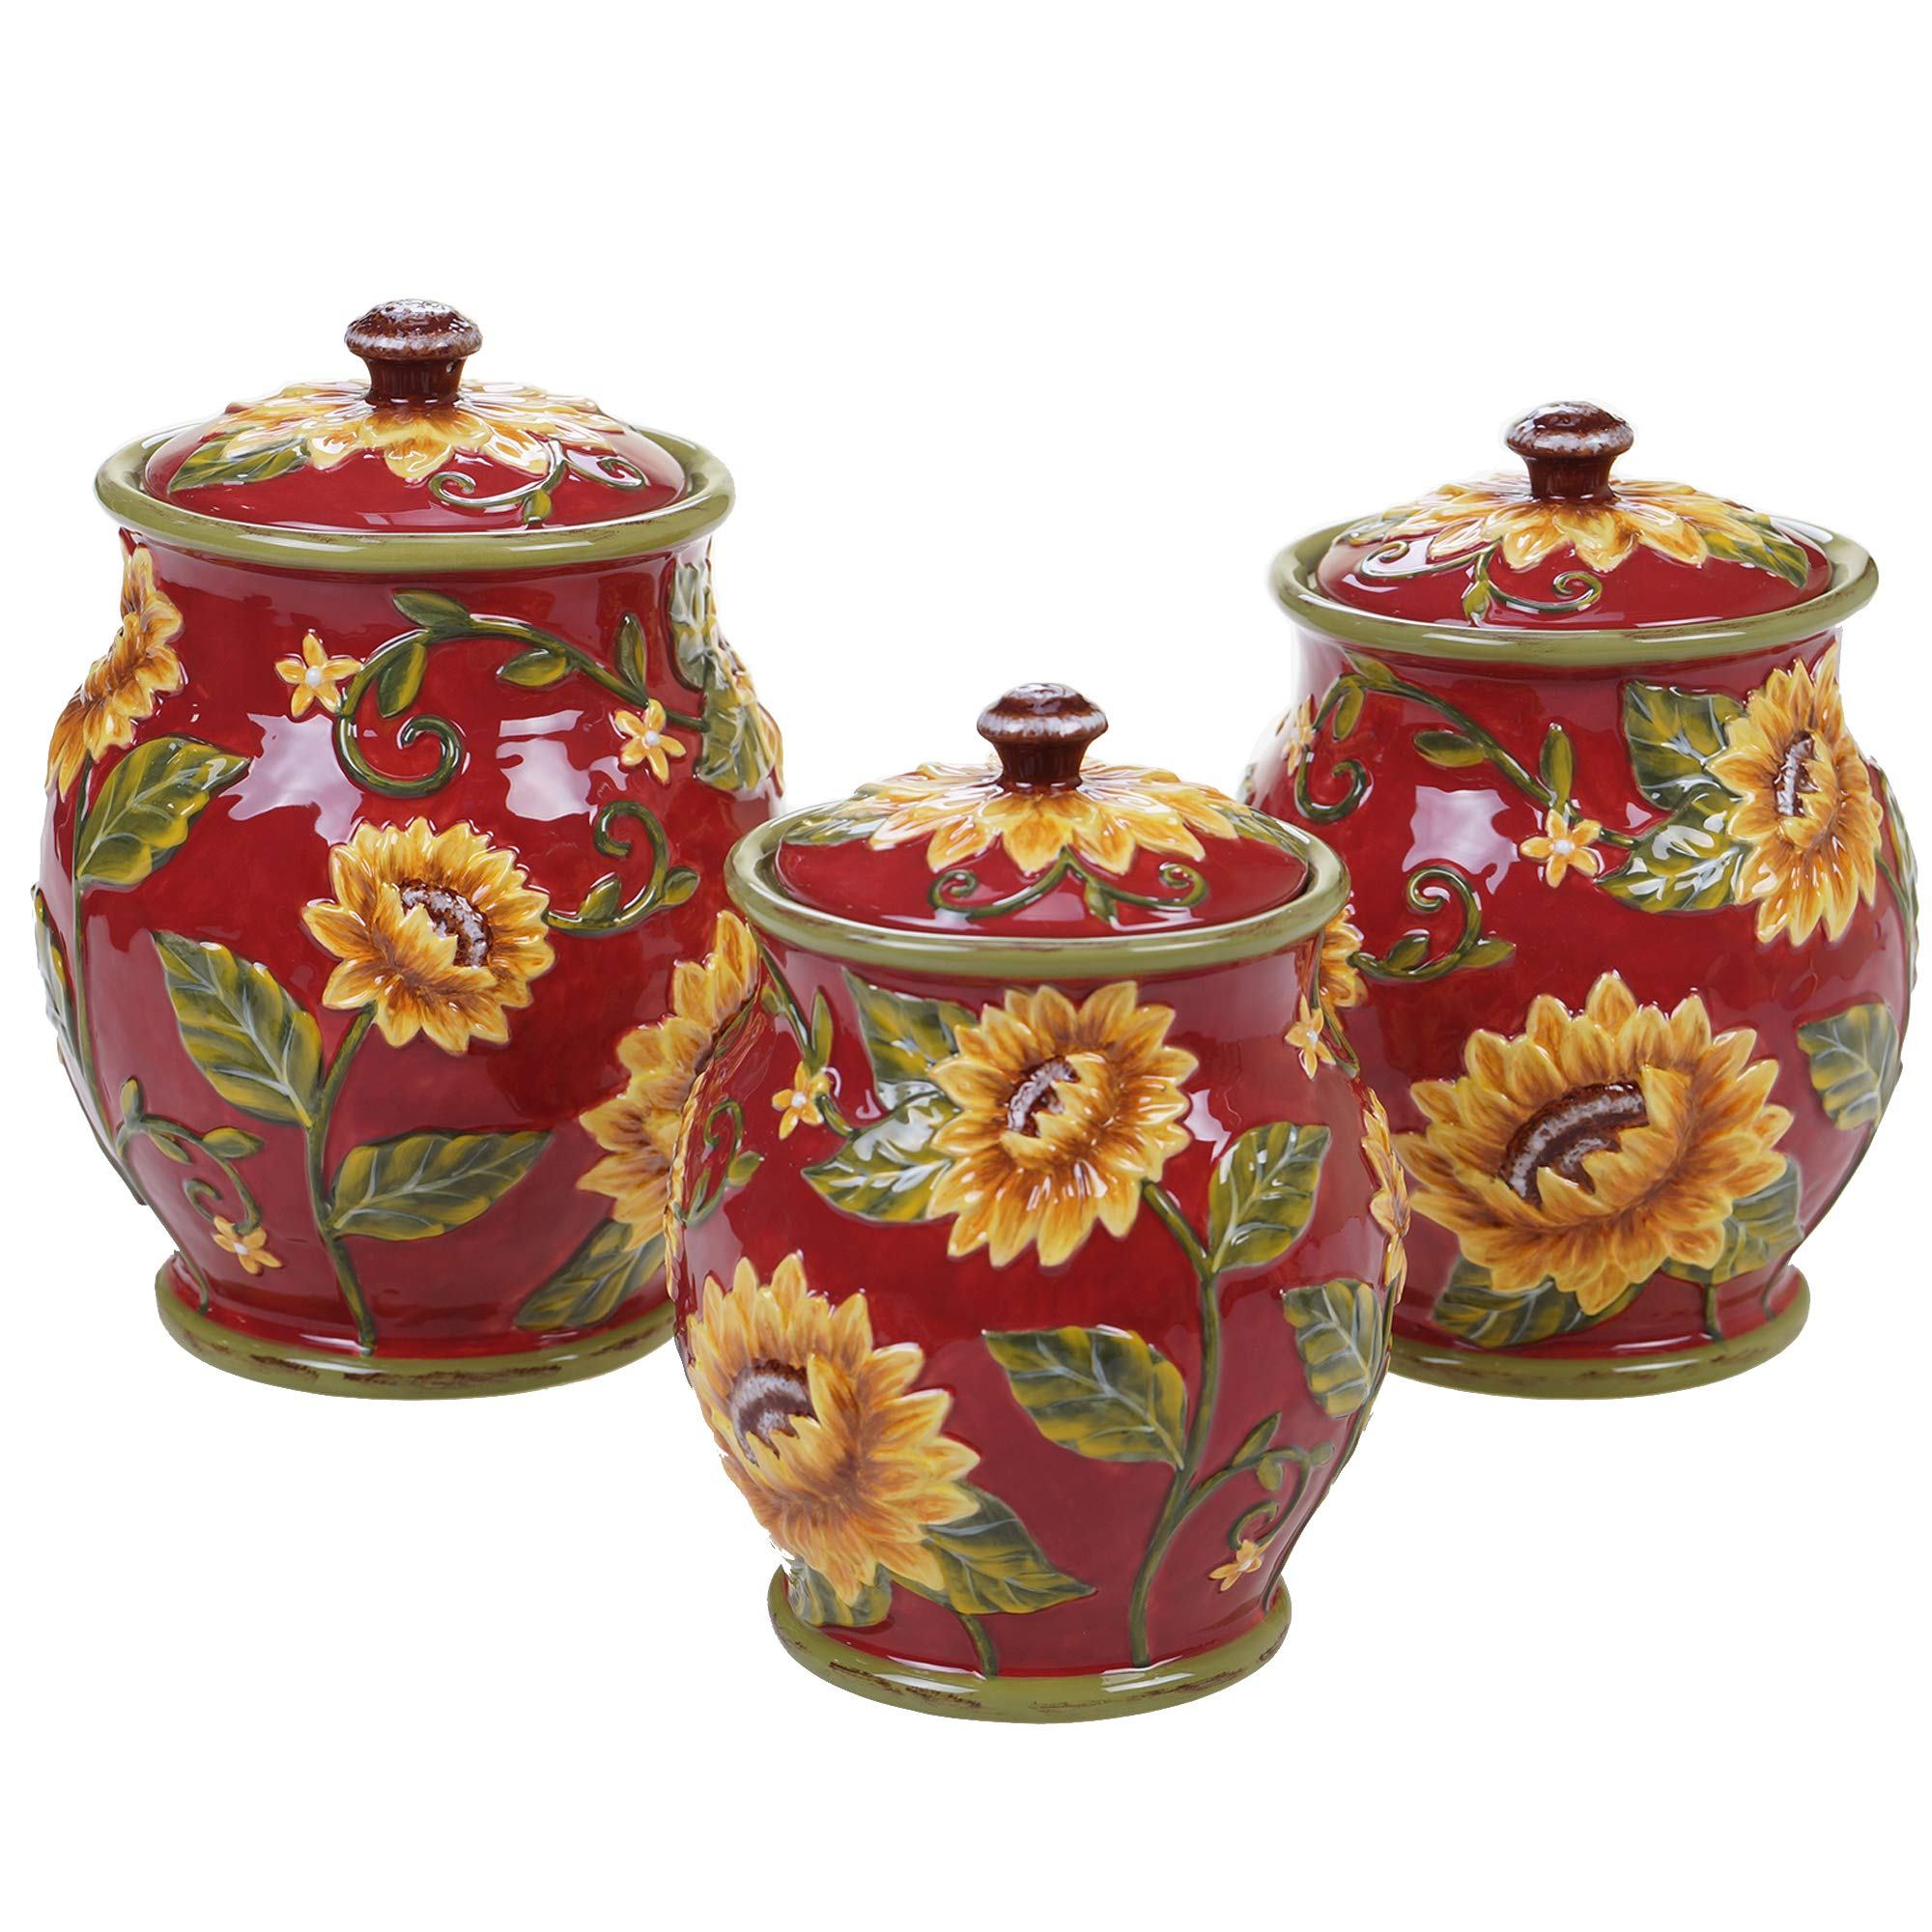 Certified International Sunset Sunflower 3 pc. Canister Set ,One Size, Multicolored